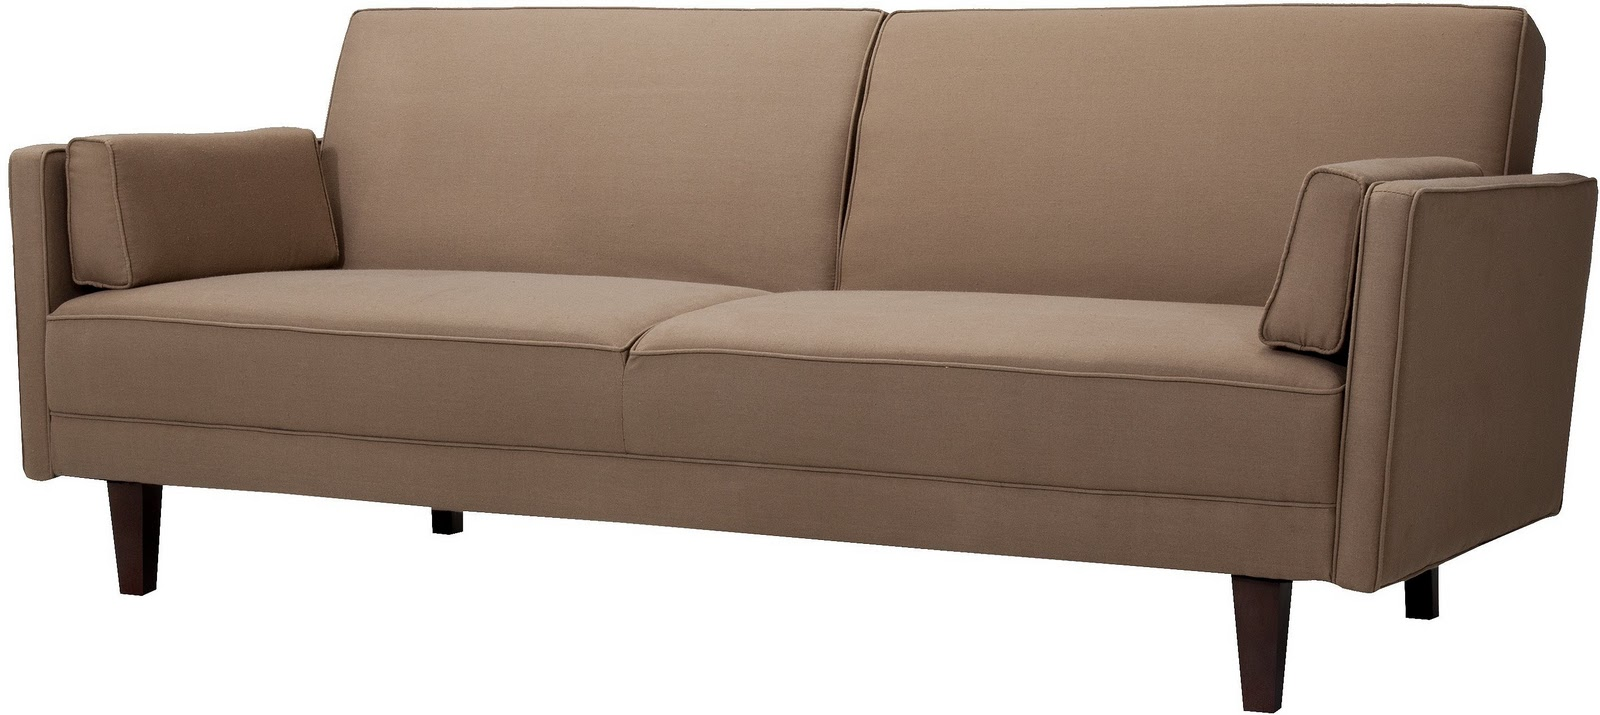 Thompson Sofa Bed Unique 63 For Double